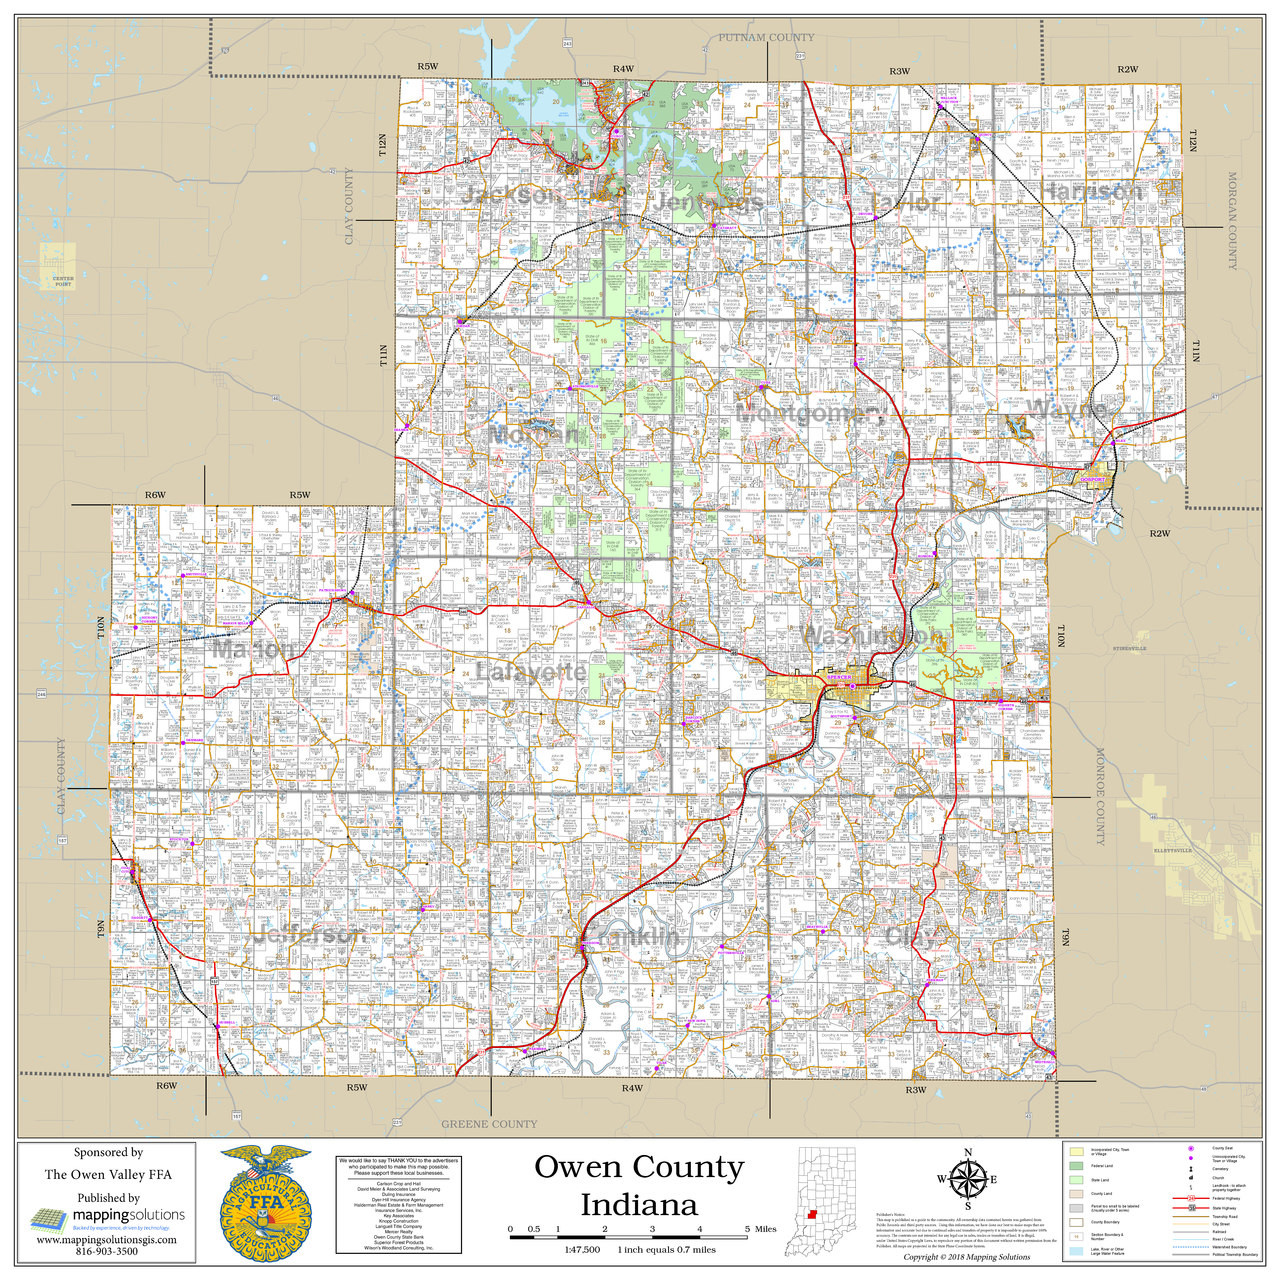 Owen County Indiana 2018 Wall Map on new south wales on a map, butler on a map, st. simons on a map, indiana flag, chicago on a map, lowell on a map, missoula on a map, dearborn on a map, kankakee on a map, harrisburg pennsylvania on a map, friendswood on a map, coosa river on a map, indiana on us map, franklin county on a map, brown county on a map, guangxi on a map, plains indians on a map, south williamsport on a map, kokomo on a map, vanderbilt on a map,